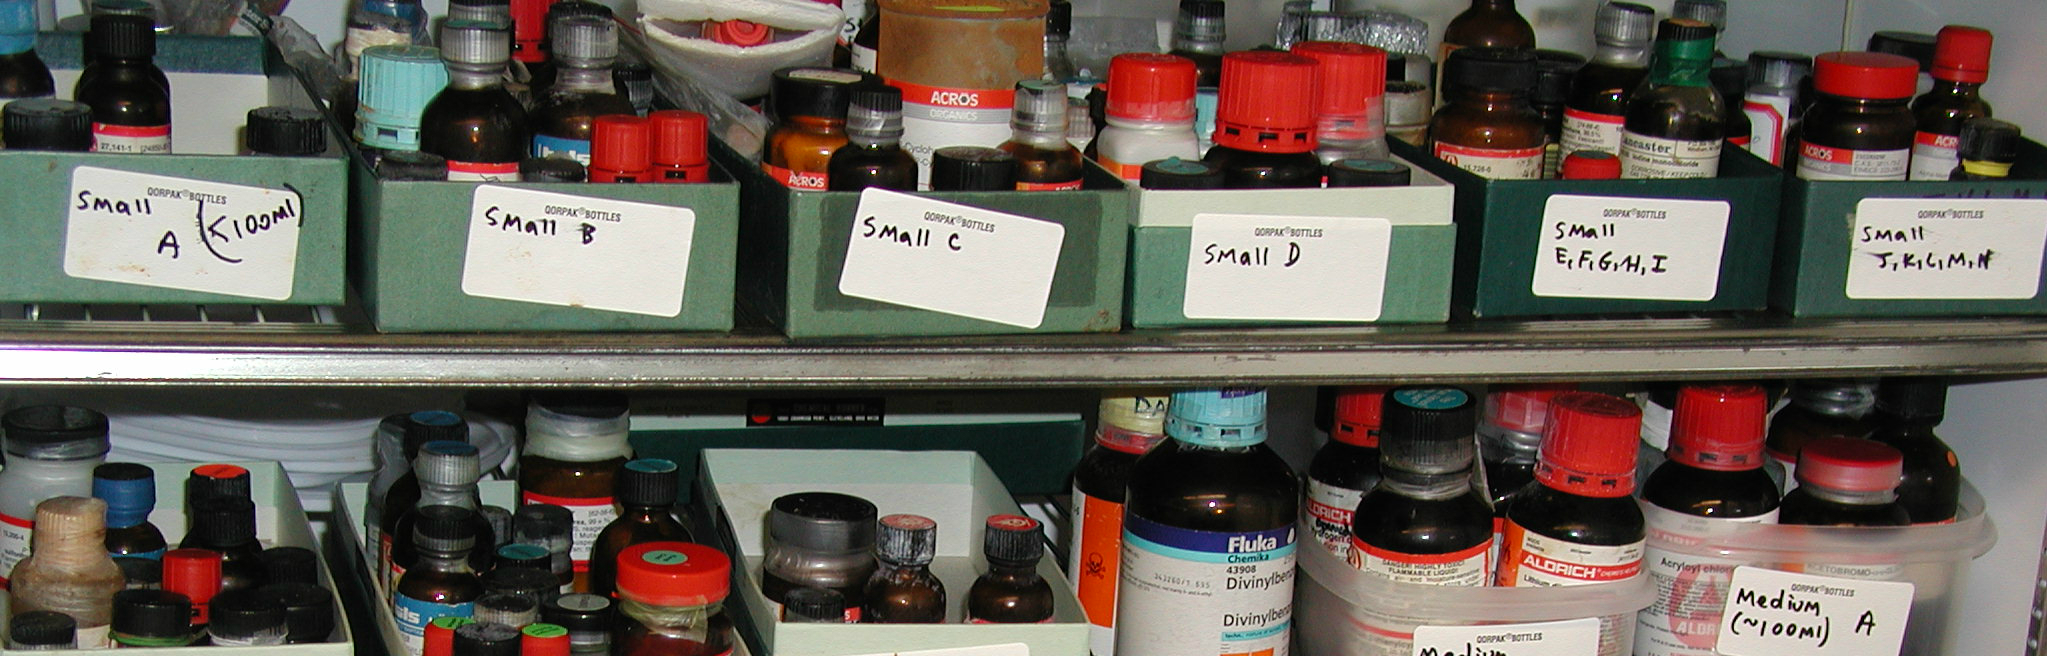 chemicals stored in a refrigerator